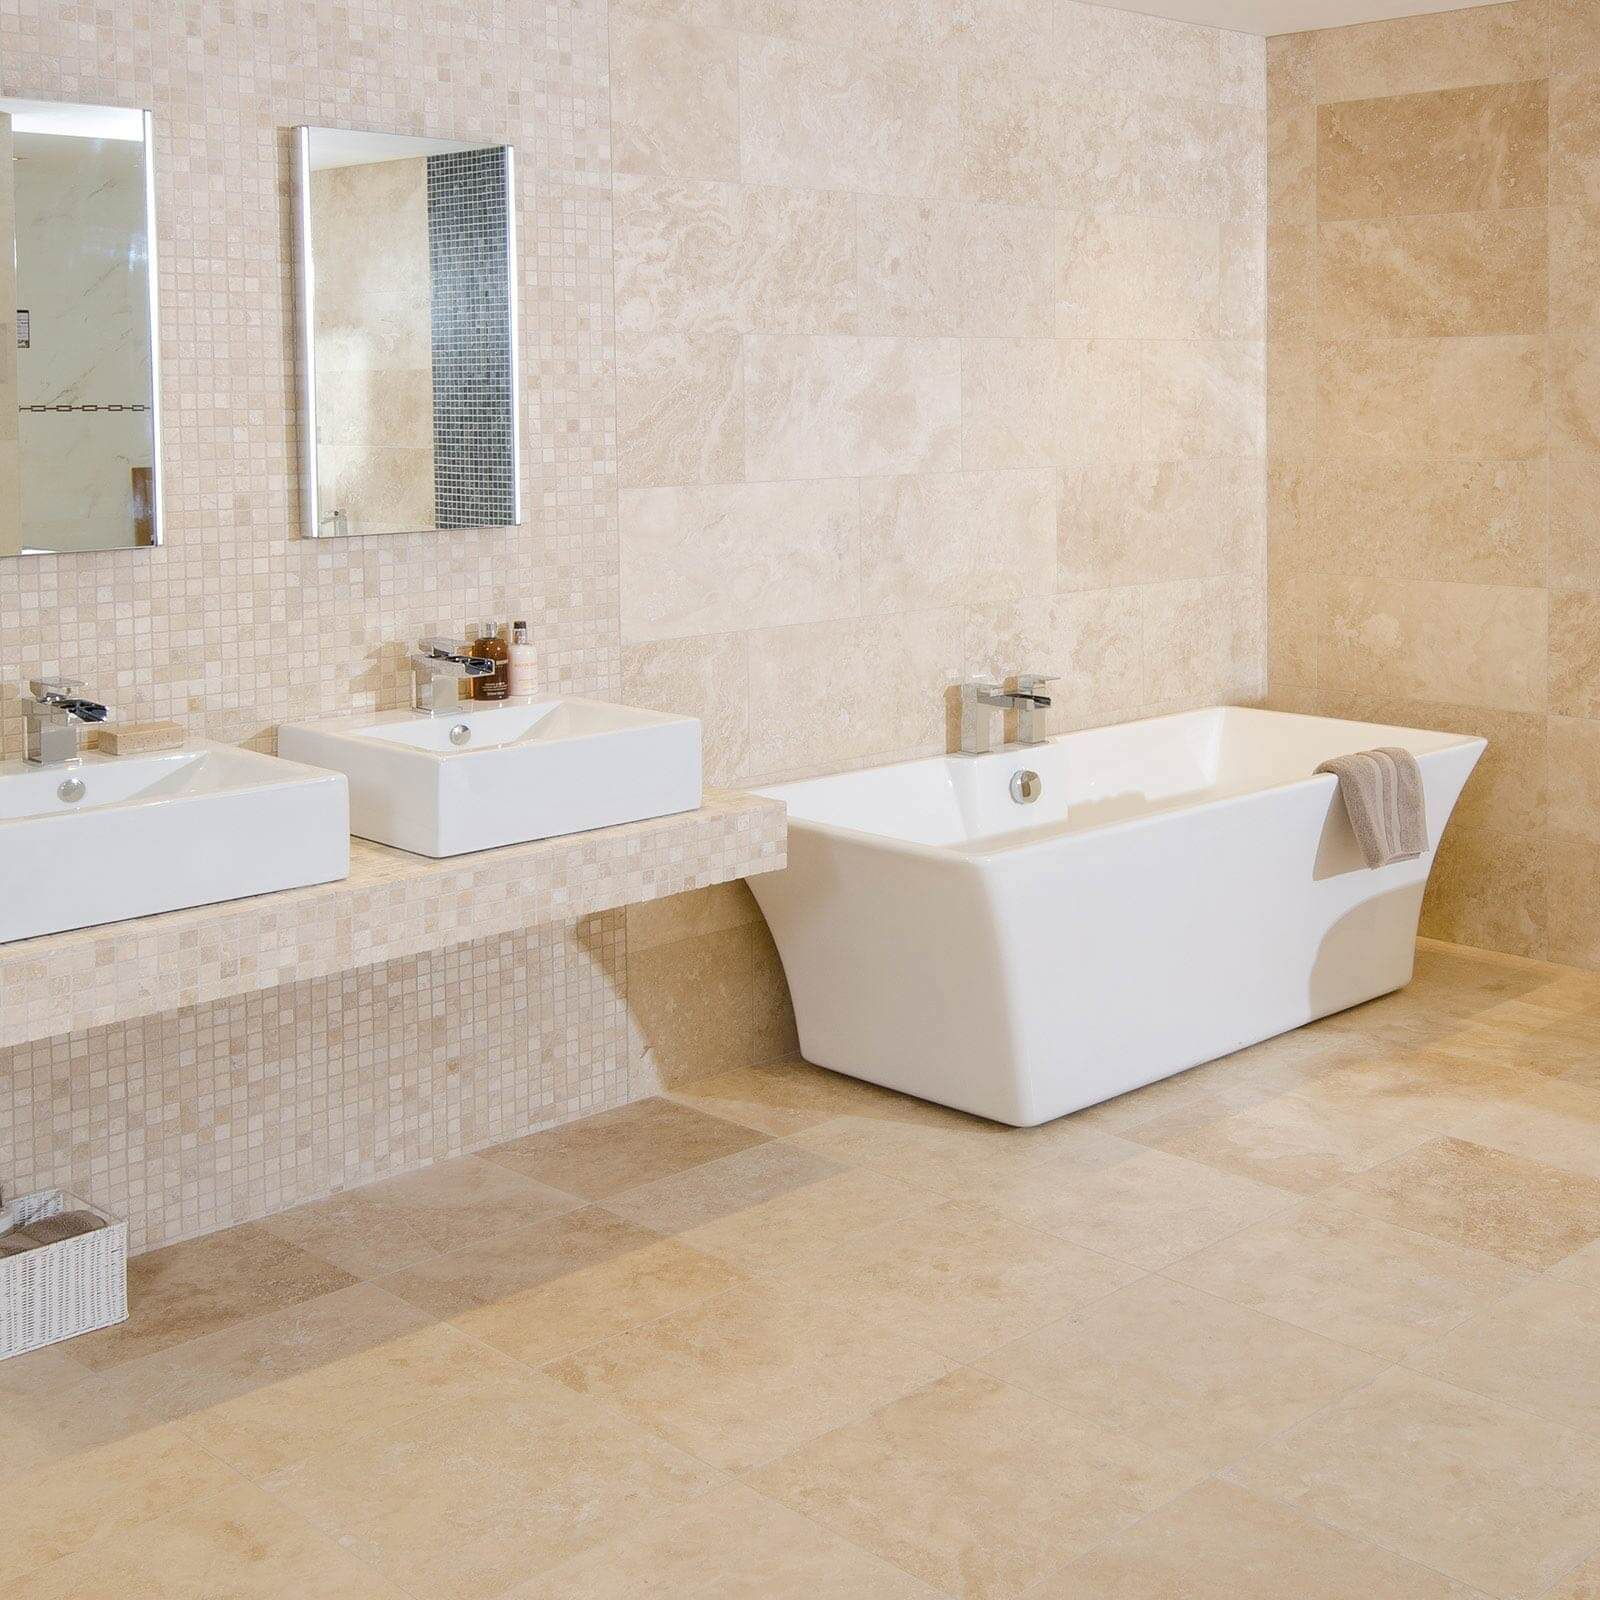 Bathroom Perfect Combination Tiles Textures Wall And Floor With Beige Bathroom Tiles Texture Beige Bathroom Bathroom Wall Tile Trendy Bathroom